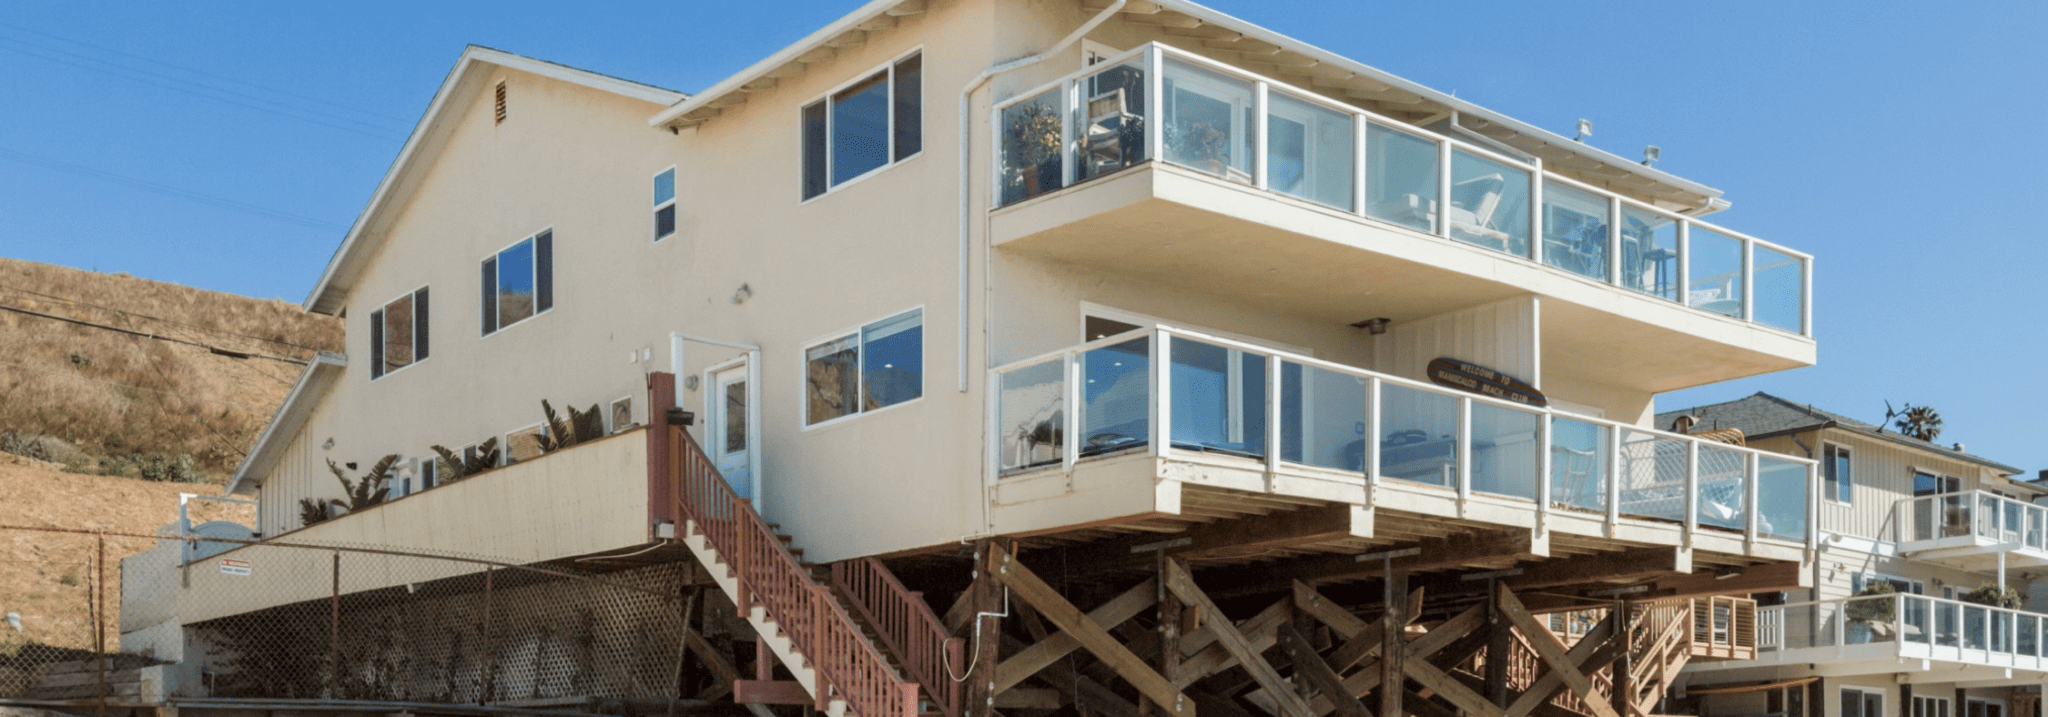 beachfront house LA Airbnb risen